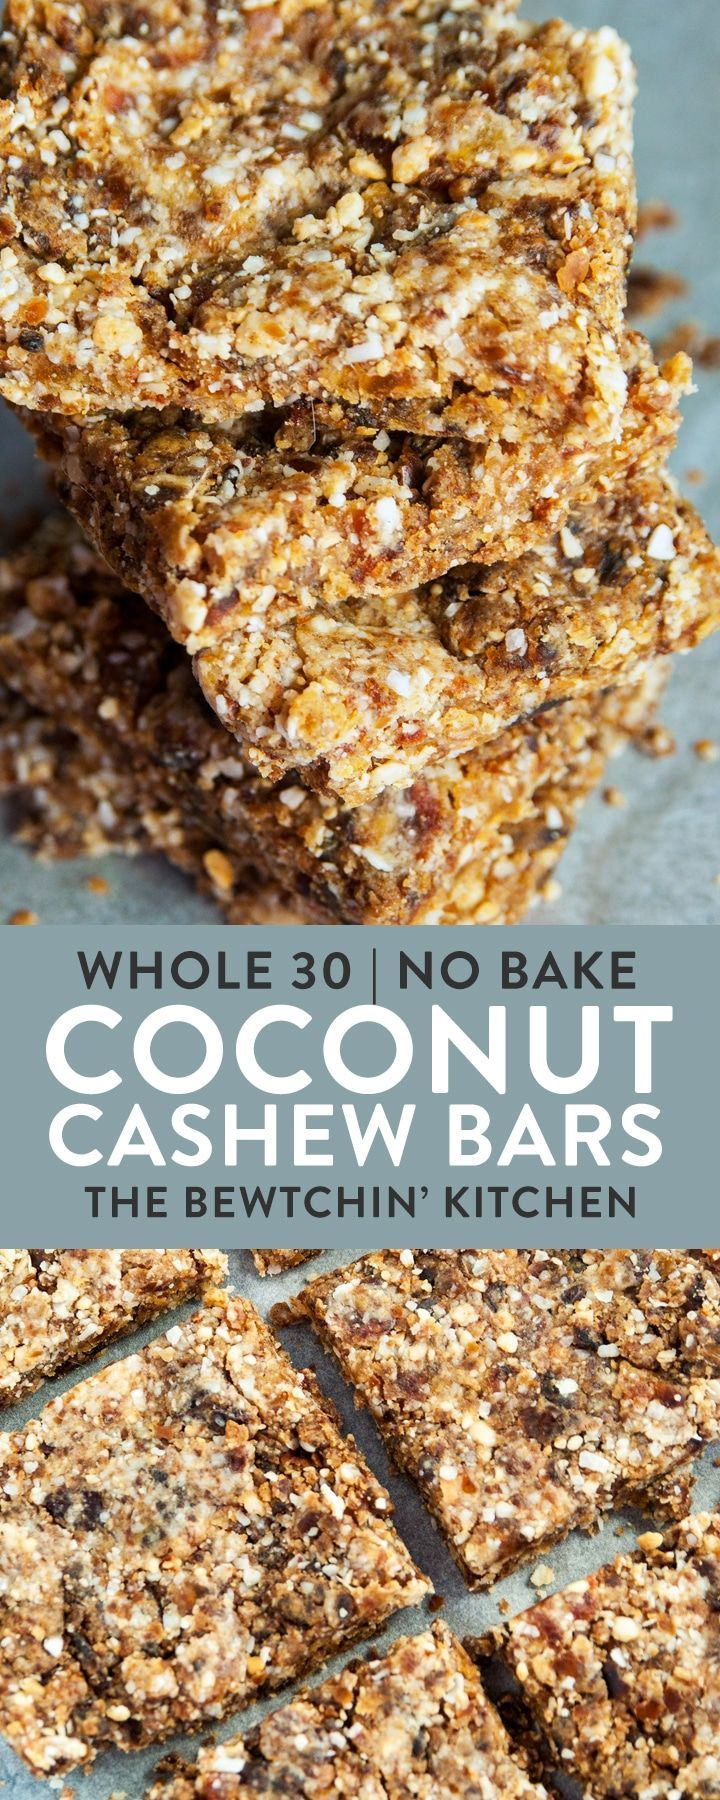 These Coconut Cashew Bars are a new Whole30 snack favorite. I made these with my Vitamix and they were so easy! Dates, coconut, and cashews blended together make a Larabar copycat recipe that's paleo and a healthy snack. via @RandaDerkson